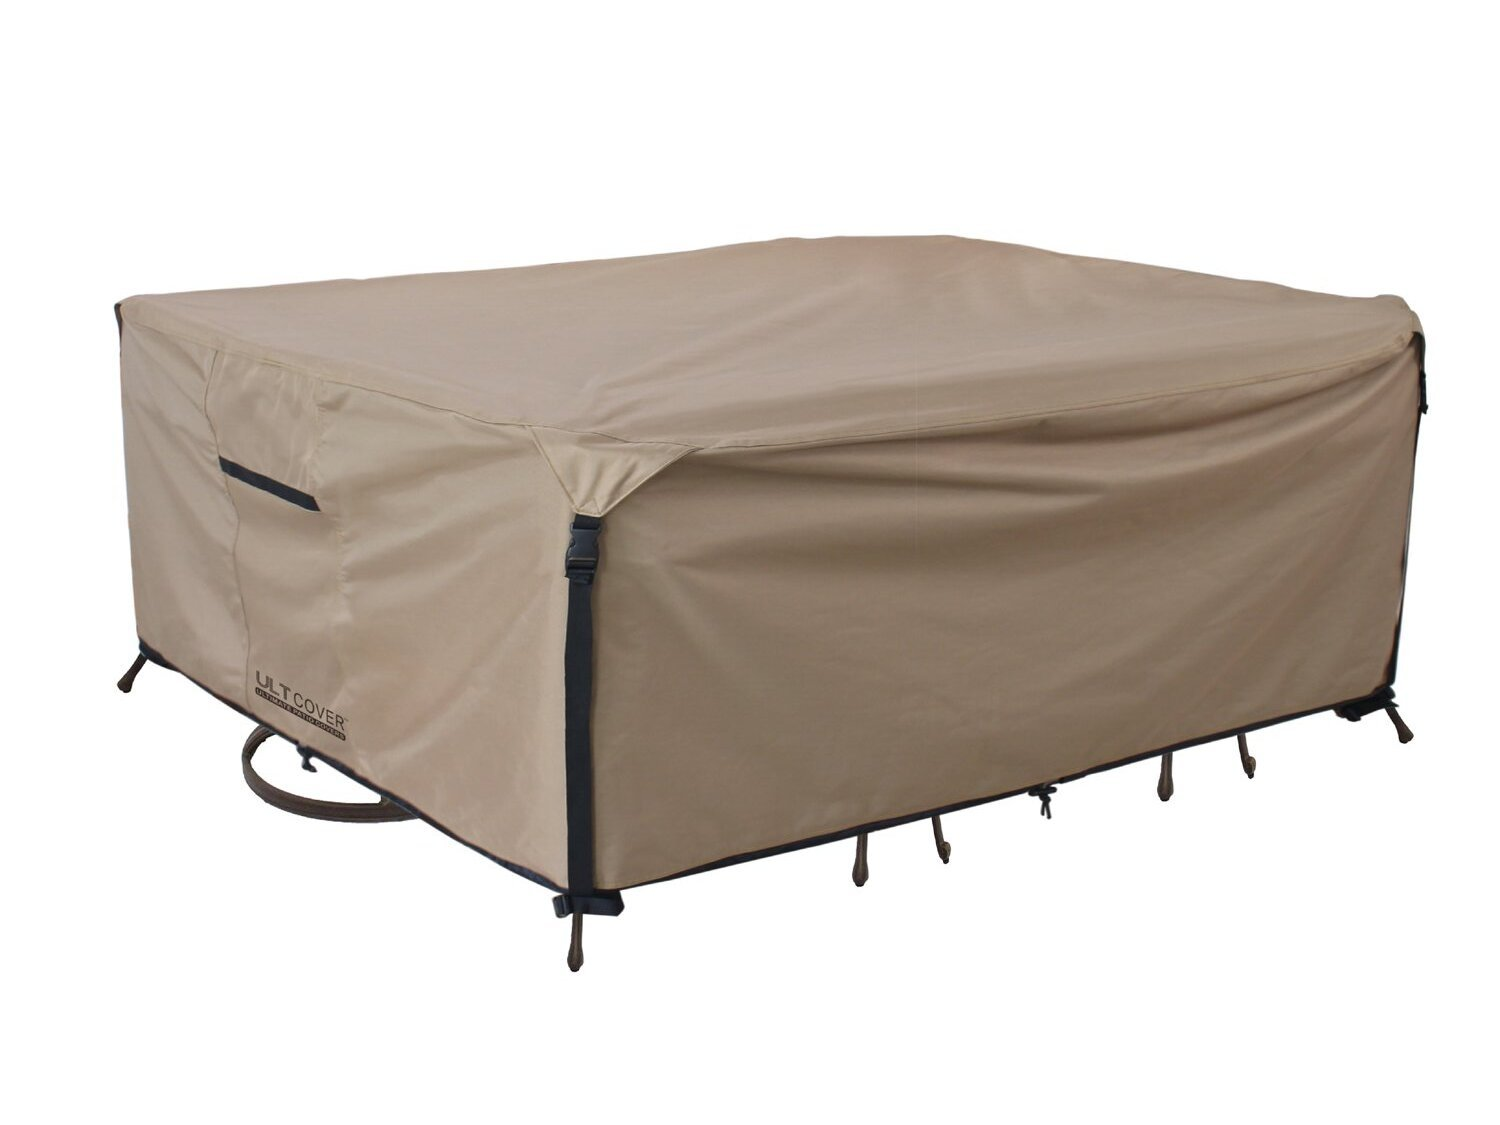 Rectangular/Oval Patio Heavy Duty Table Cover 600D Tough Canvas 100% Waterproof & UV-resistant Outdoor Dining Table Chair Set Cover Size 136L x 74W x 28H inch